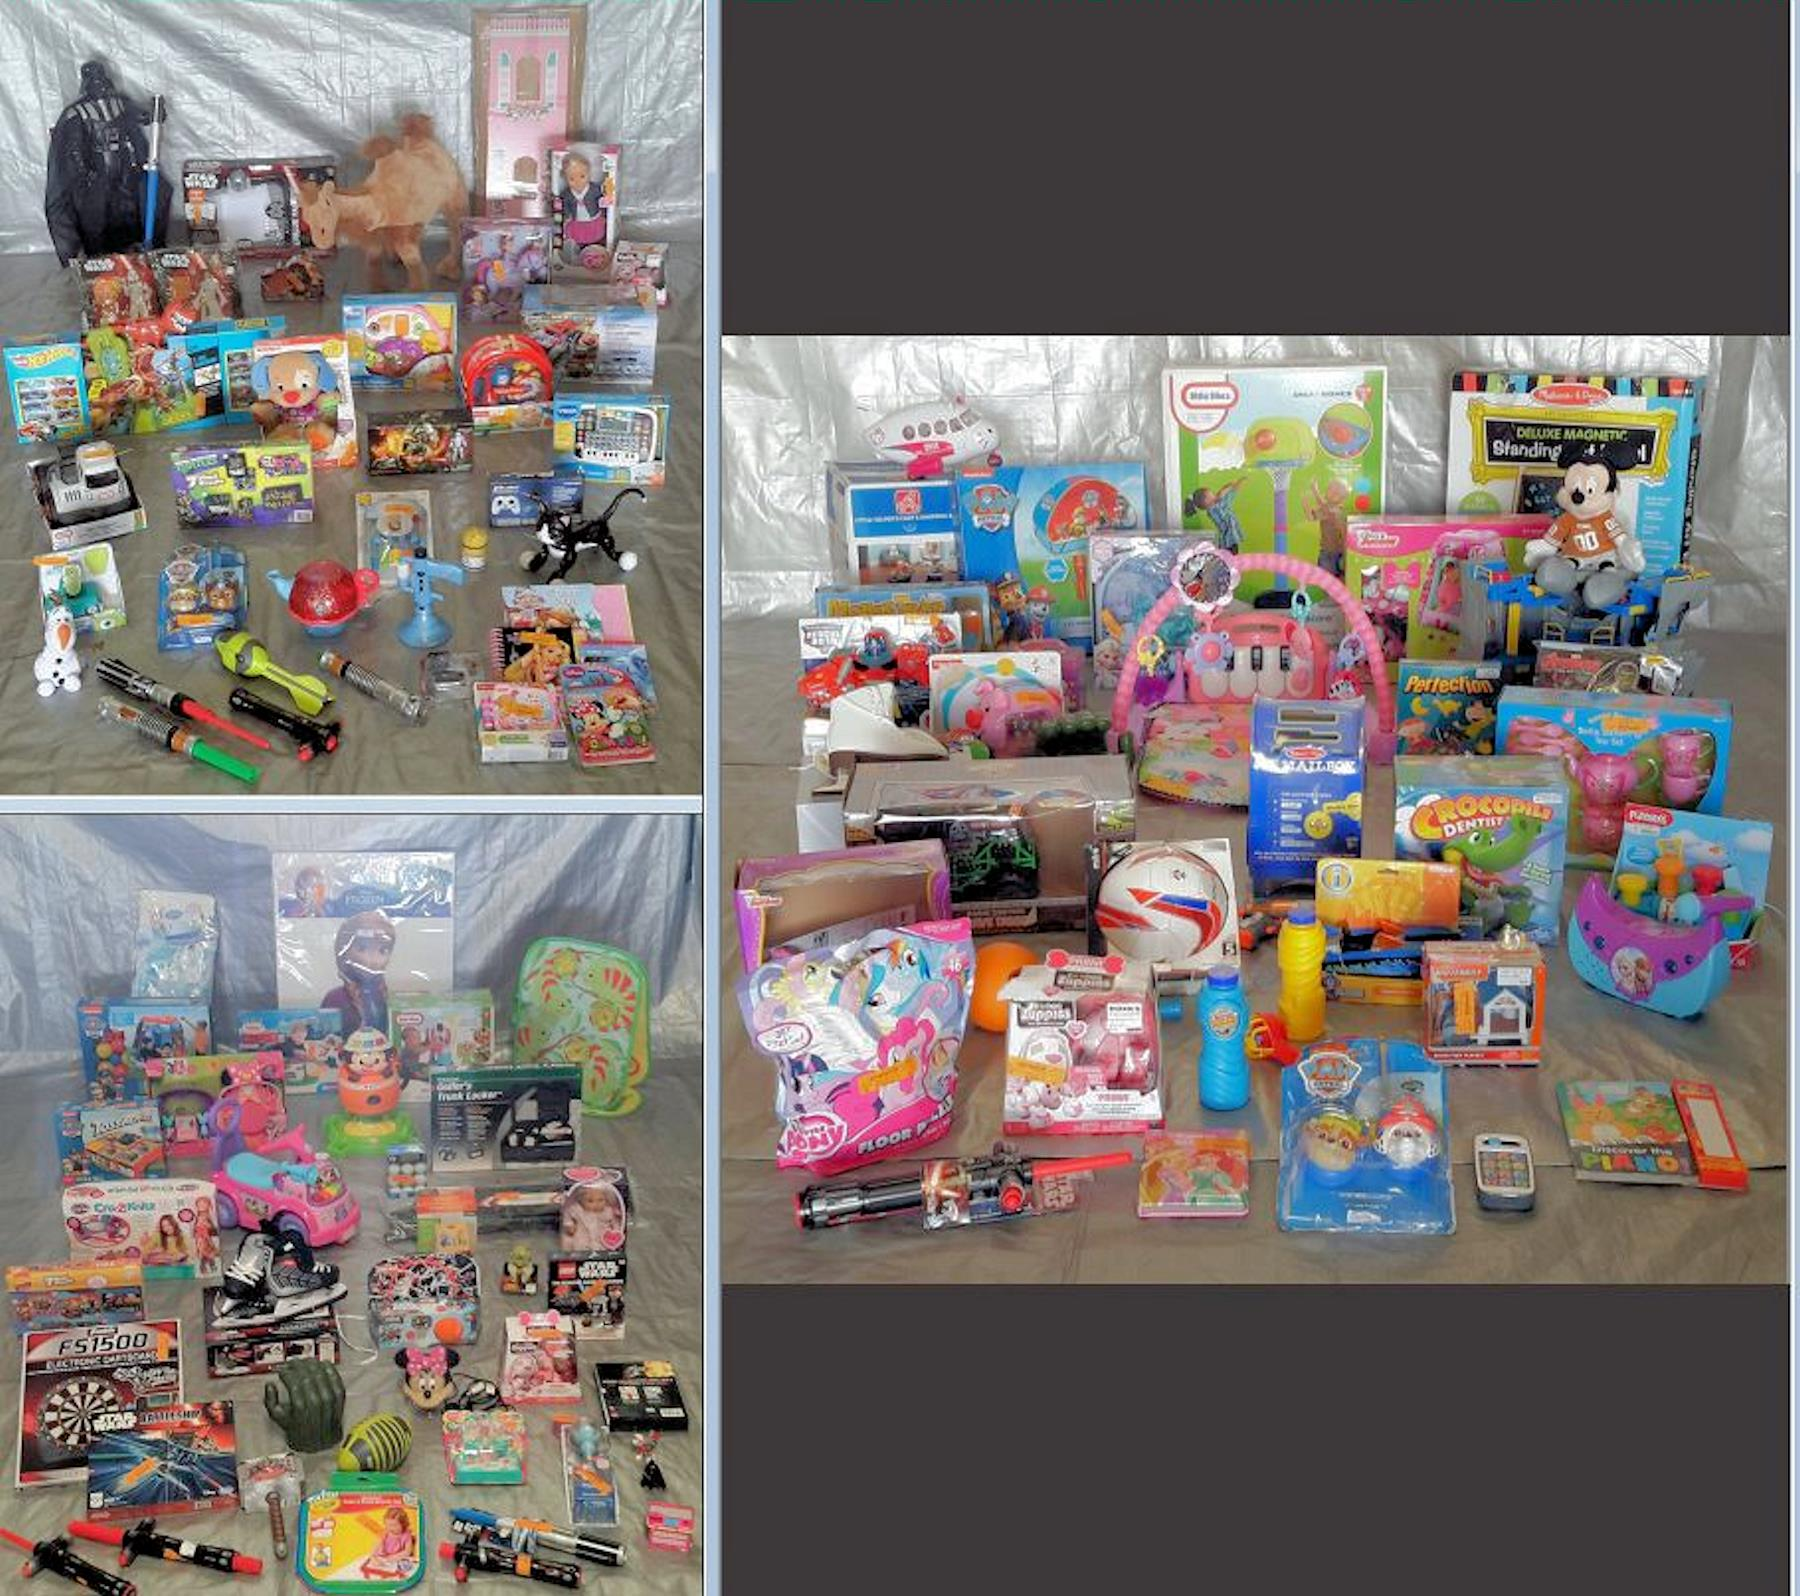 Wholesale Manifested Pallet of Kids TOYS & Collectibles 121 items Pallet #3